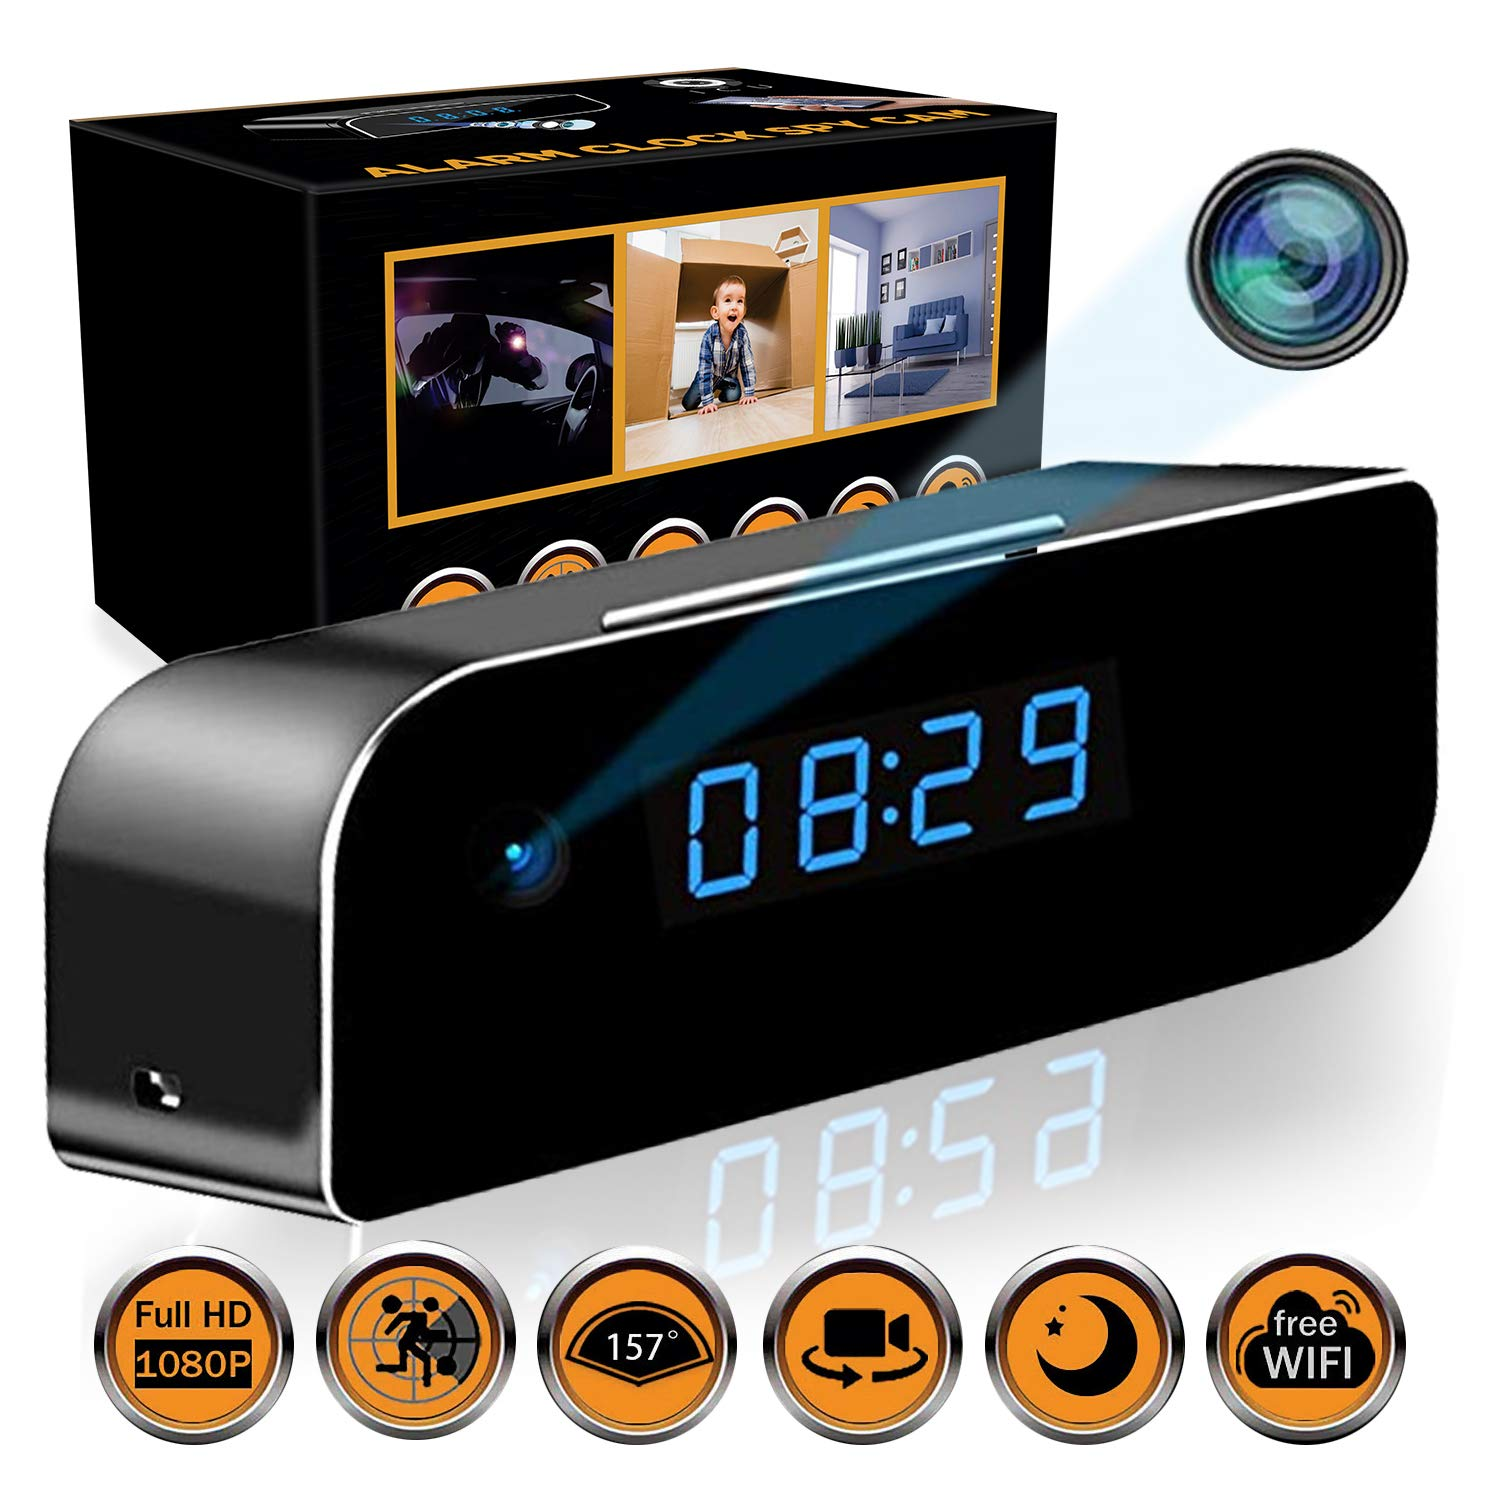 State-of-The-Art Wireless Hidden Camera Clock | Motion Detection Alarm Clock Camera | Spy Camera Clock with Night Vision | HD Recording Camera Clock | Clock Spy Camera & Hidden Cam Remote by ICU